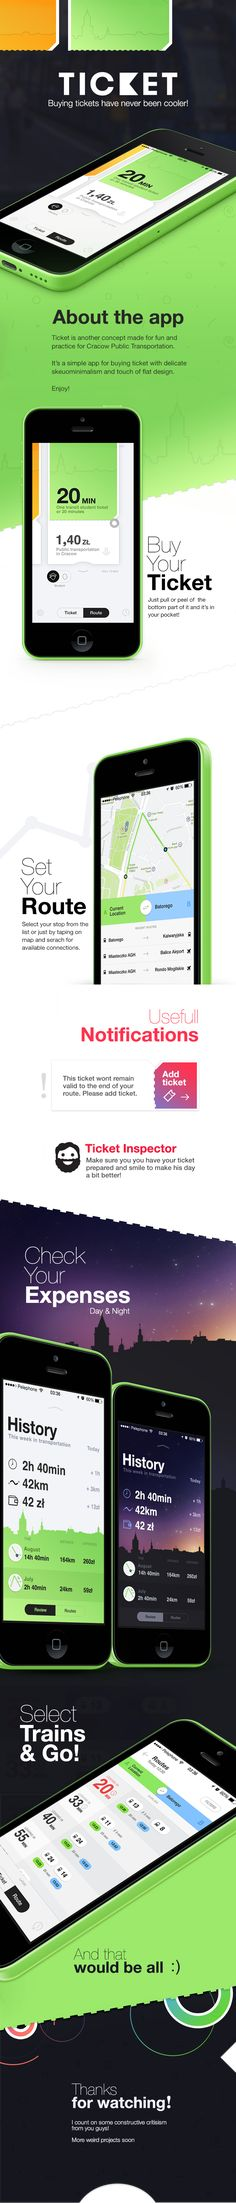 Ticket #App https://www.behance.net/gallery/19678177/Ticket #UI #UX